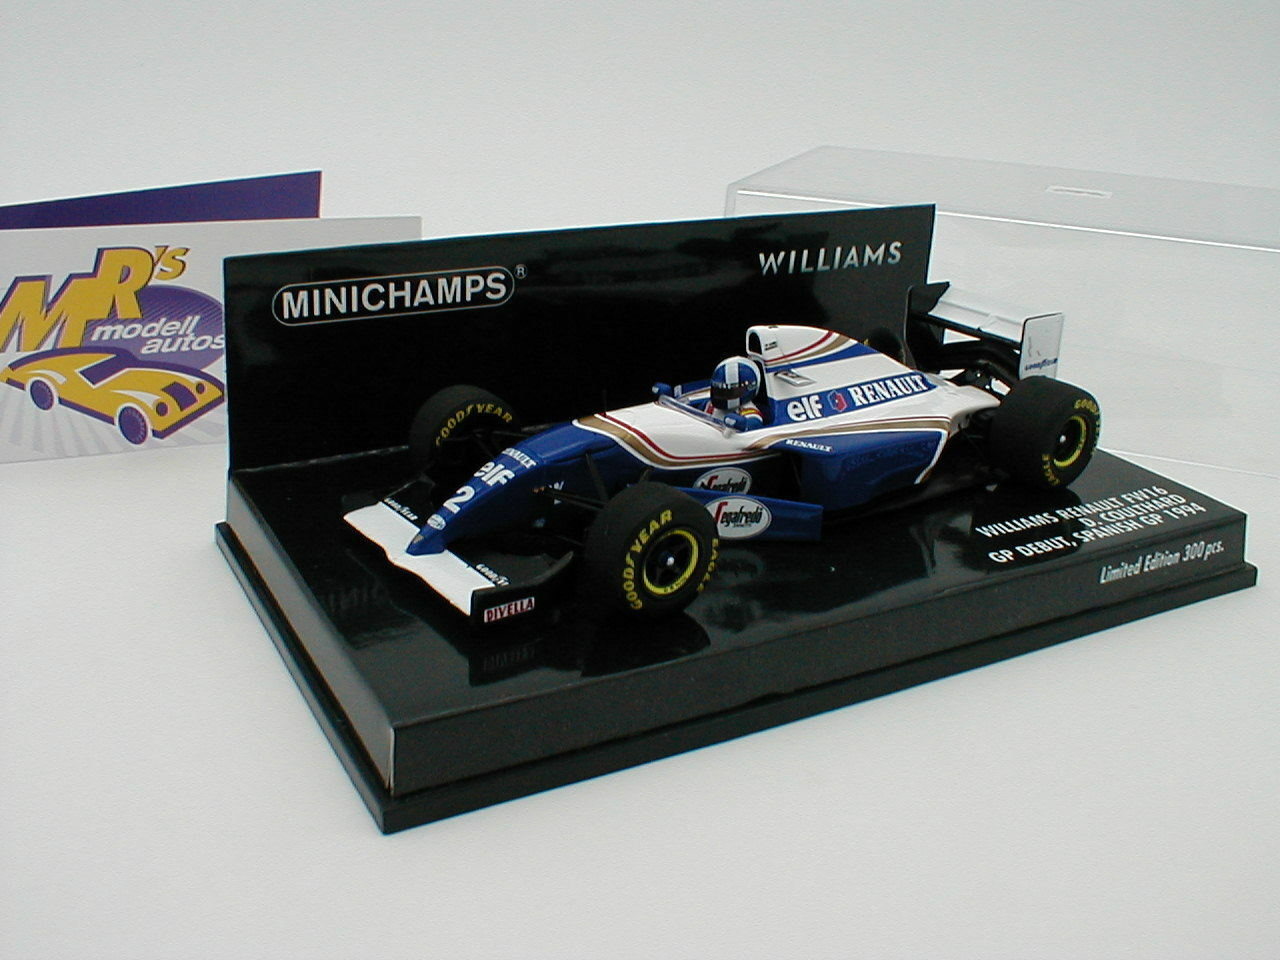 Minichamps 417940802 - Williams Renault Renault Renault FW16 Nigel D. Coulthard Spanien GP 1 43 e76bc4